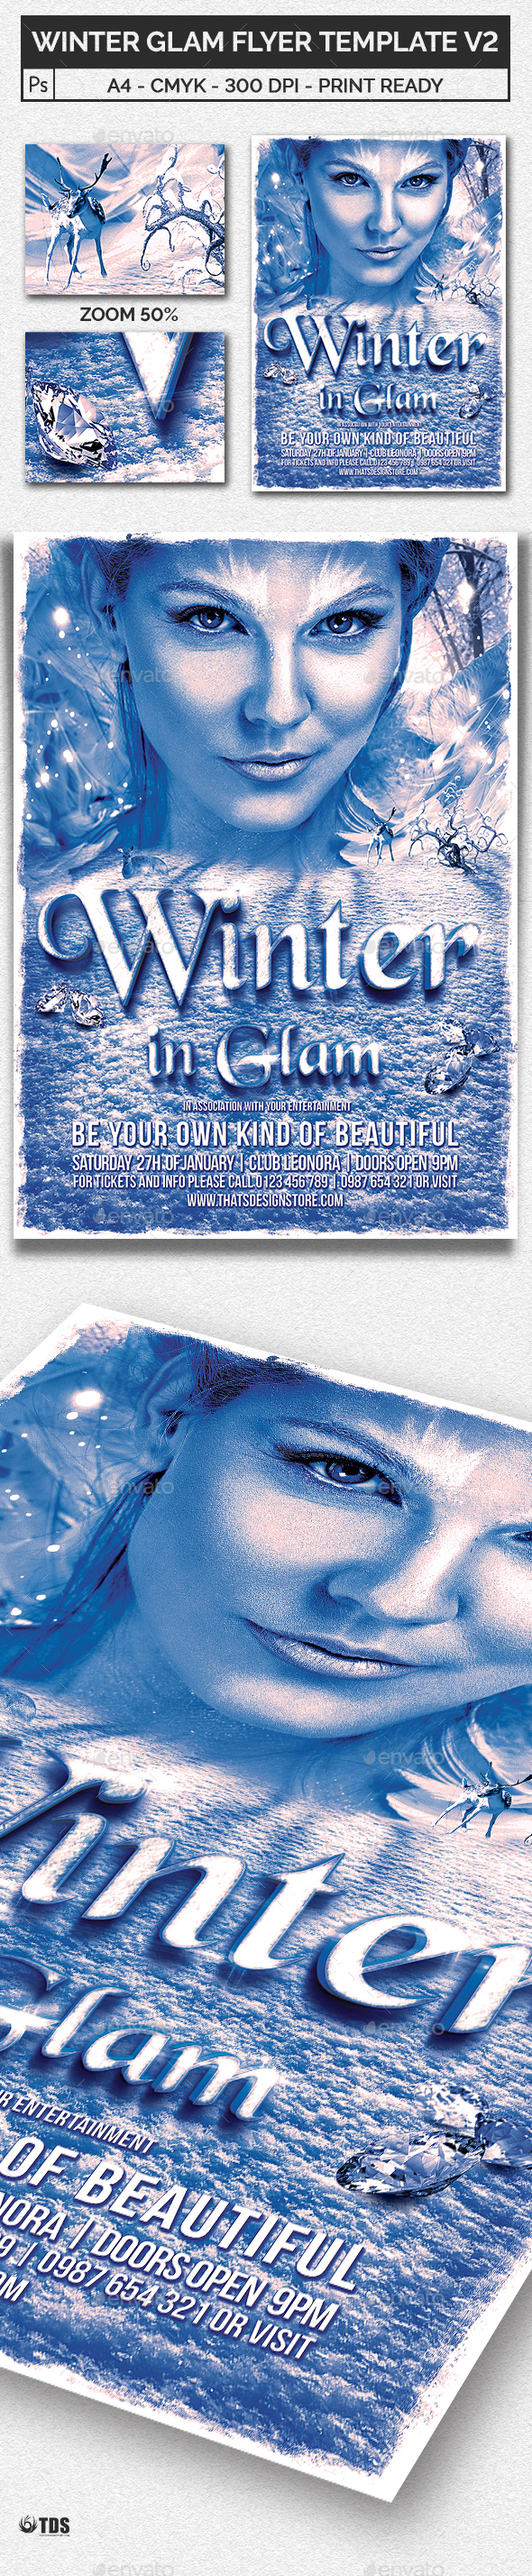 Winter Glam Flyer Template V2 - Clubs & Parties Events